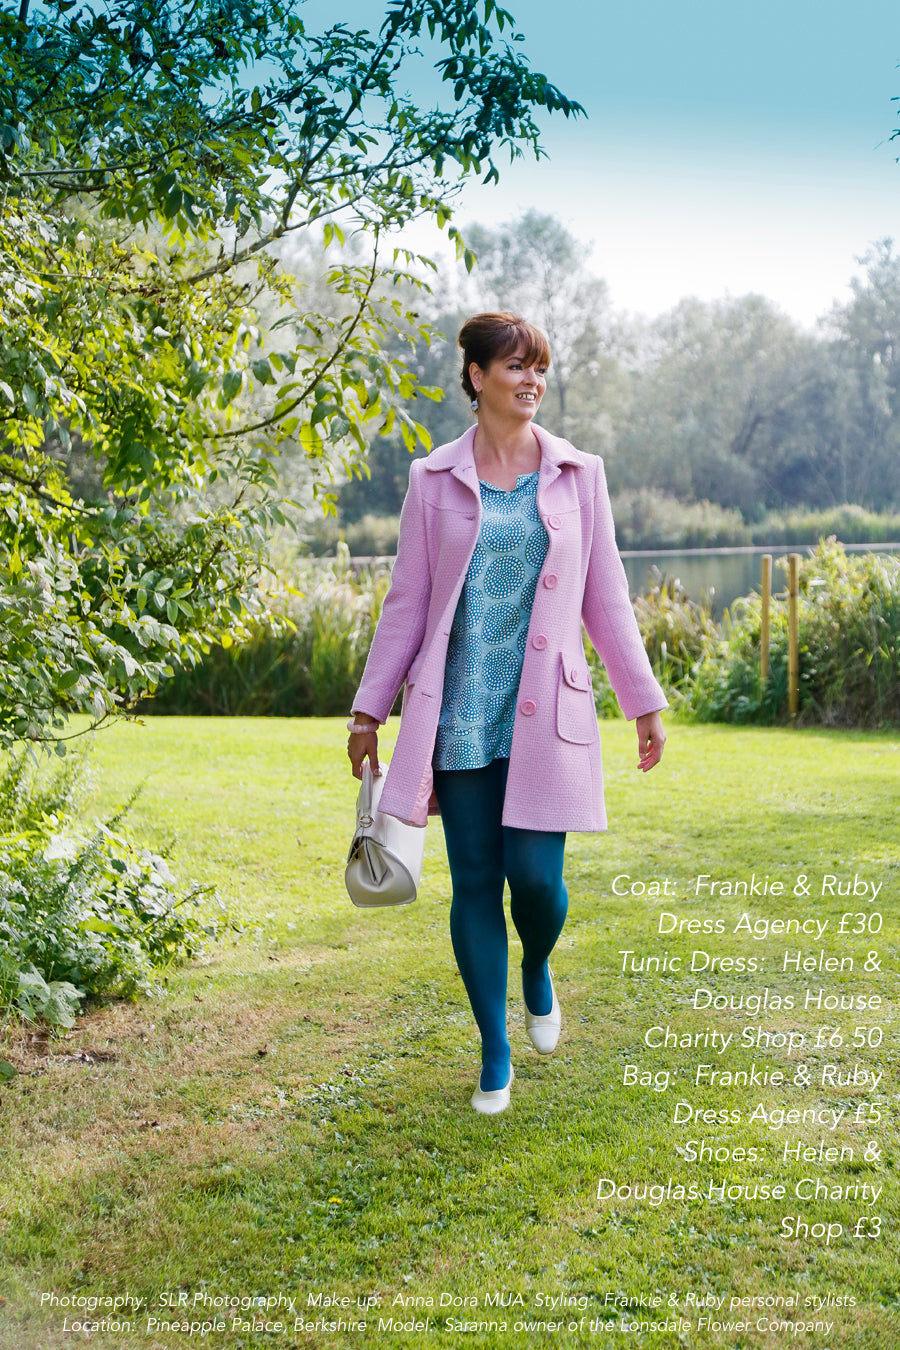 A model in a pink coat wearing secondhand clothes